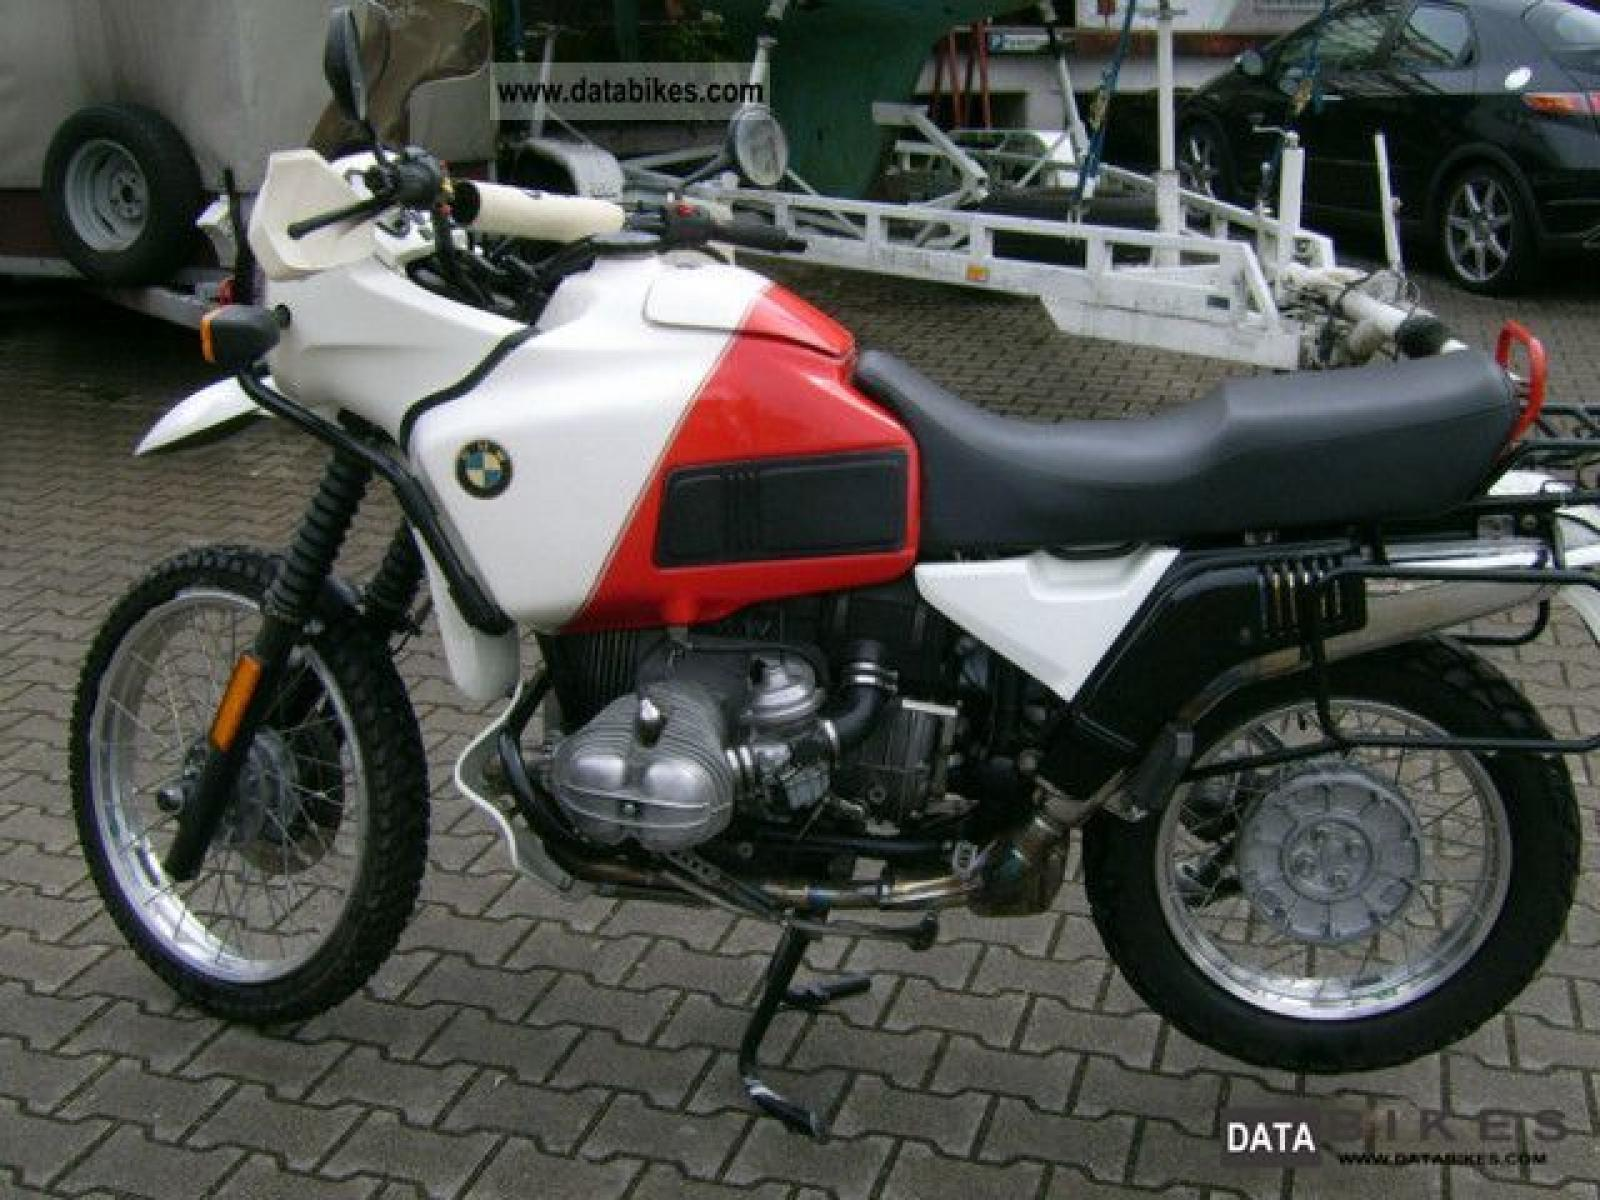 BMW R100GS Paris-Dakar images #7518